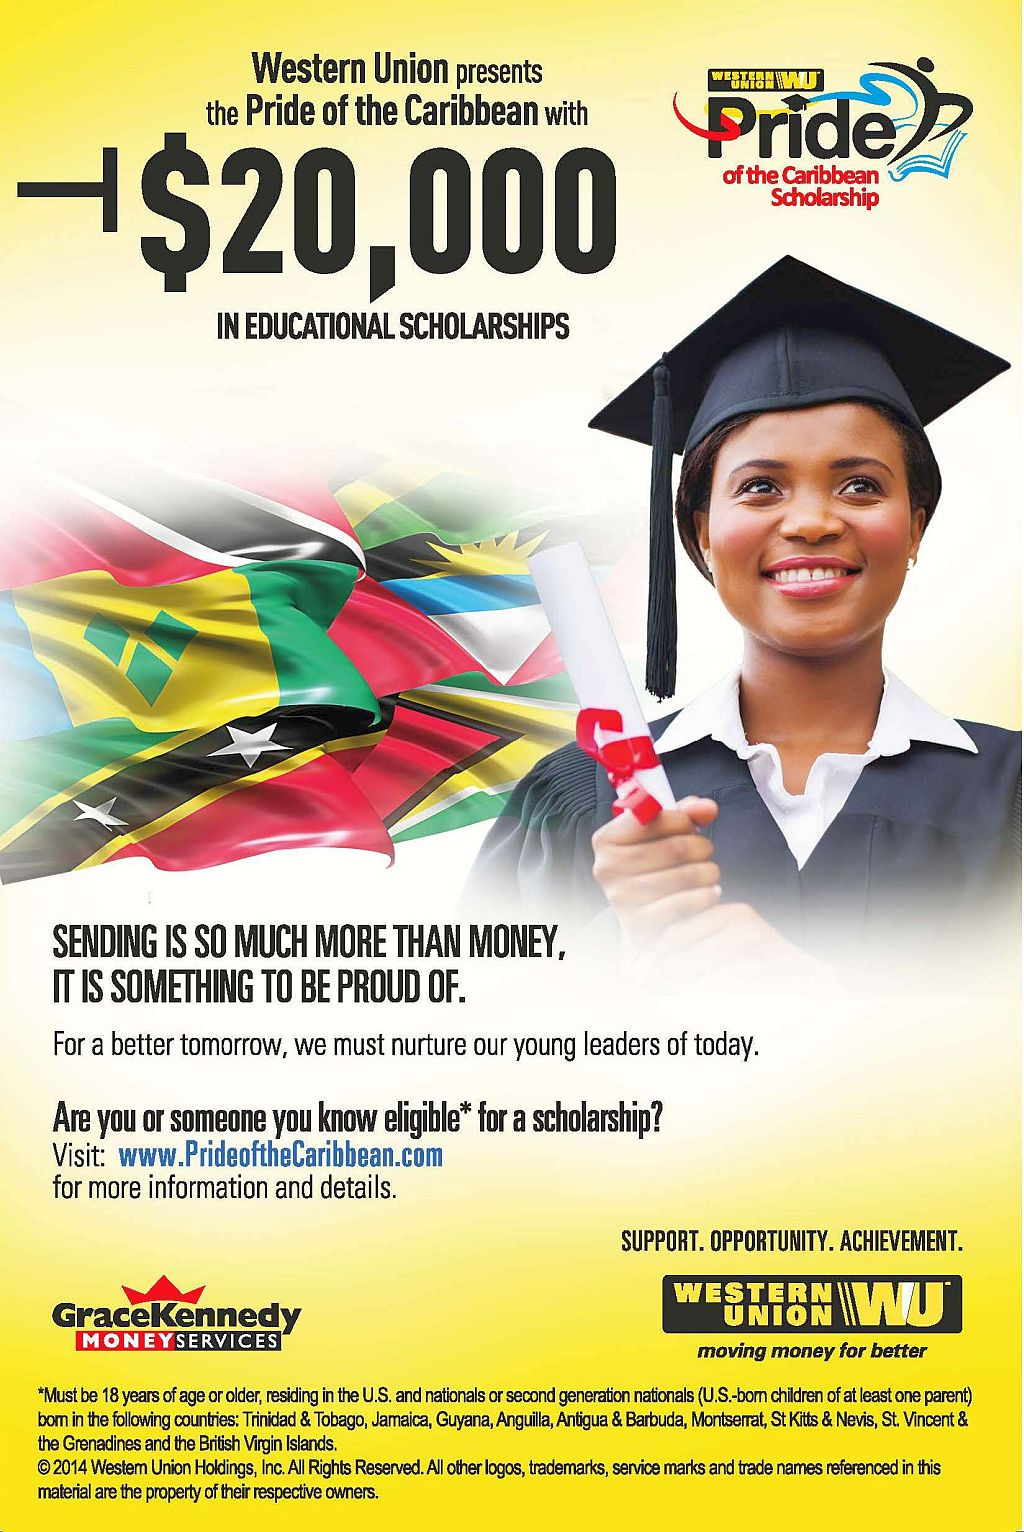 western union scholarships pride of caribbean